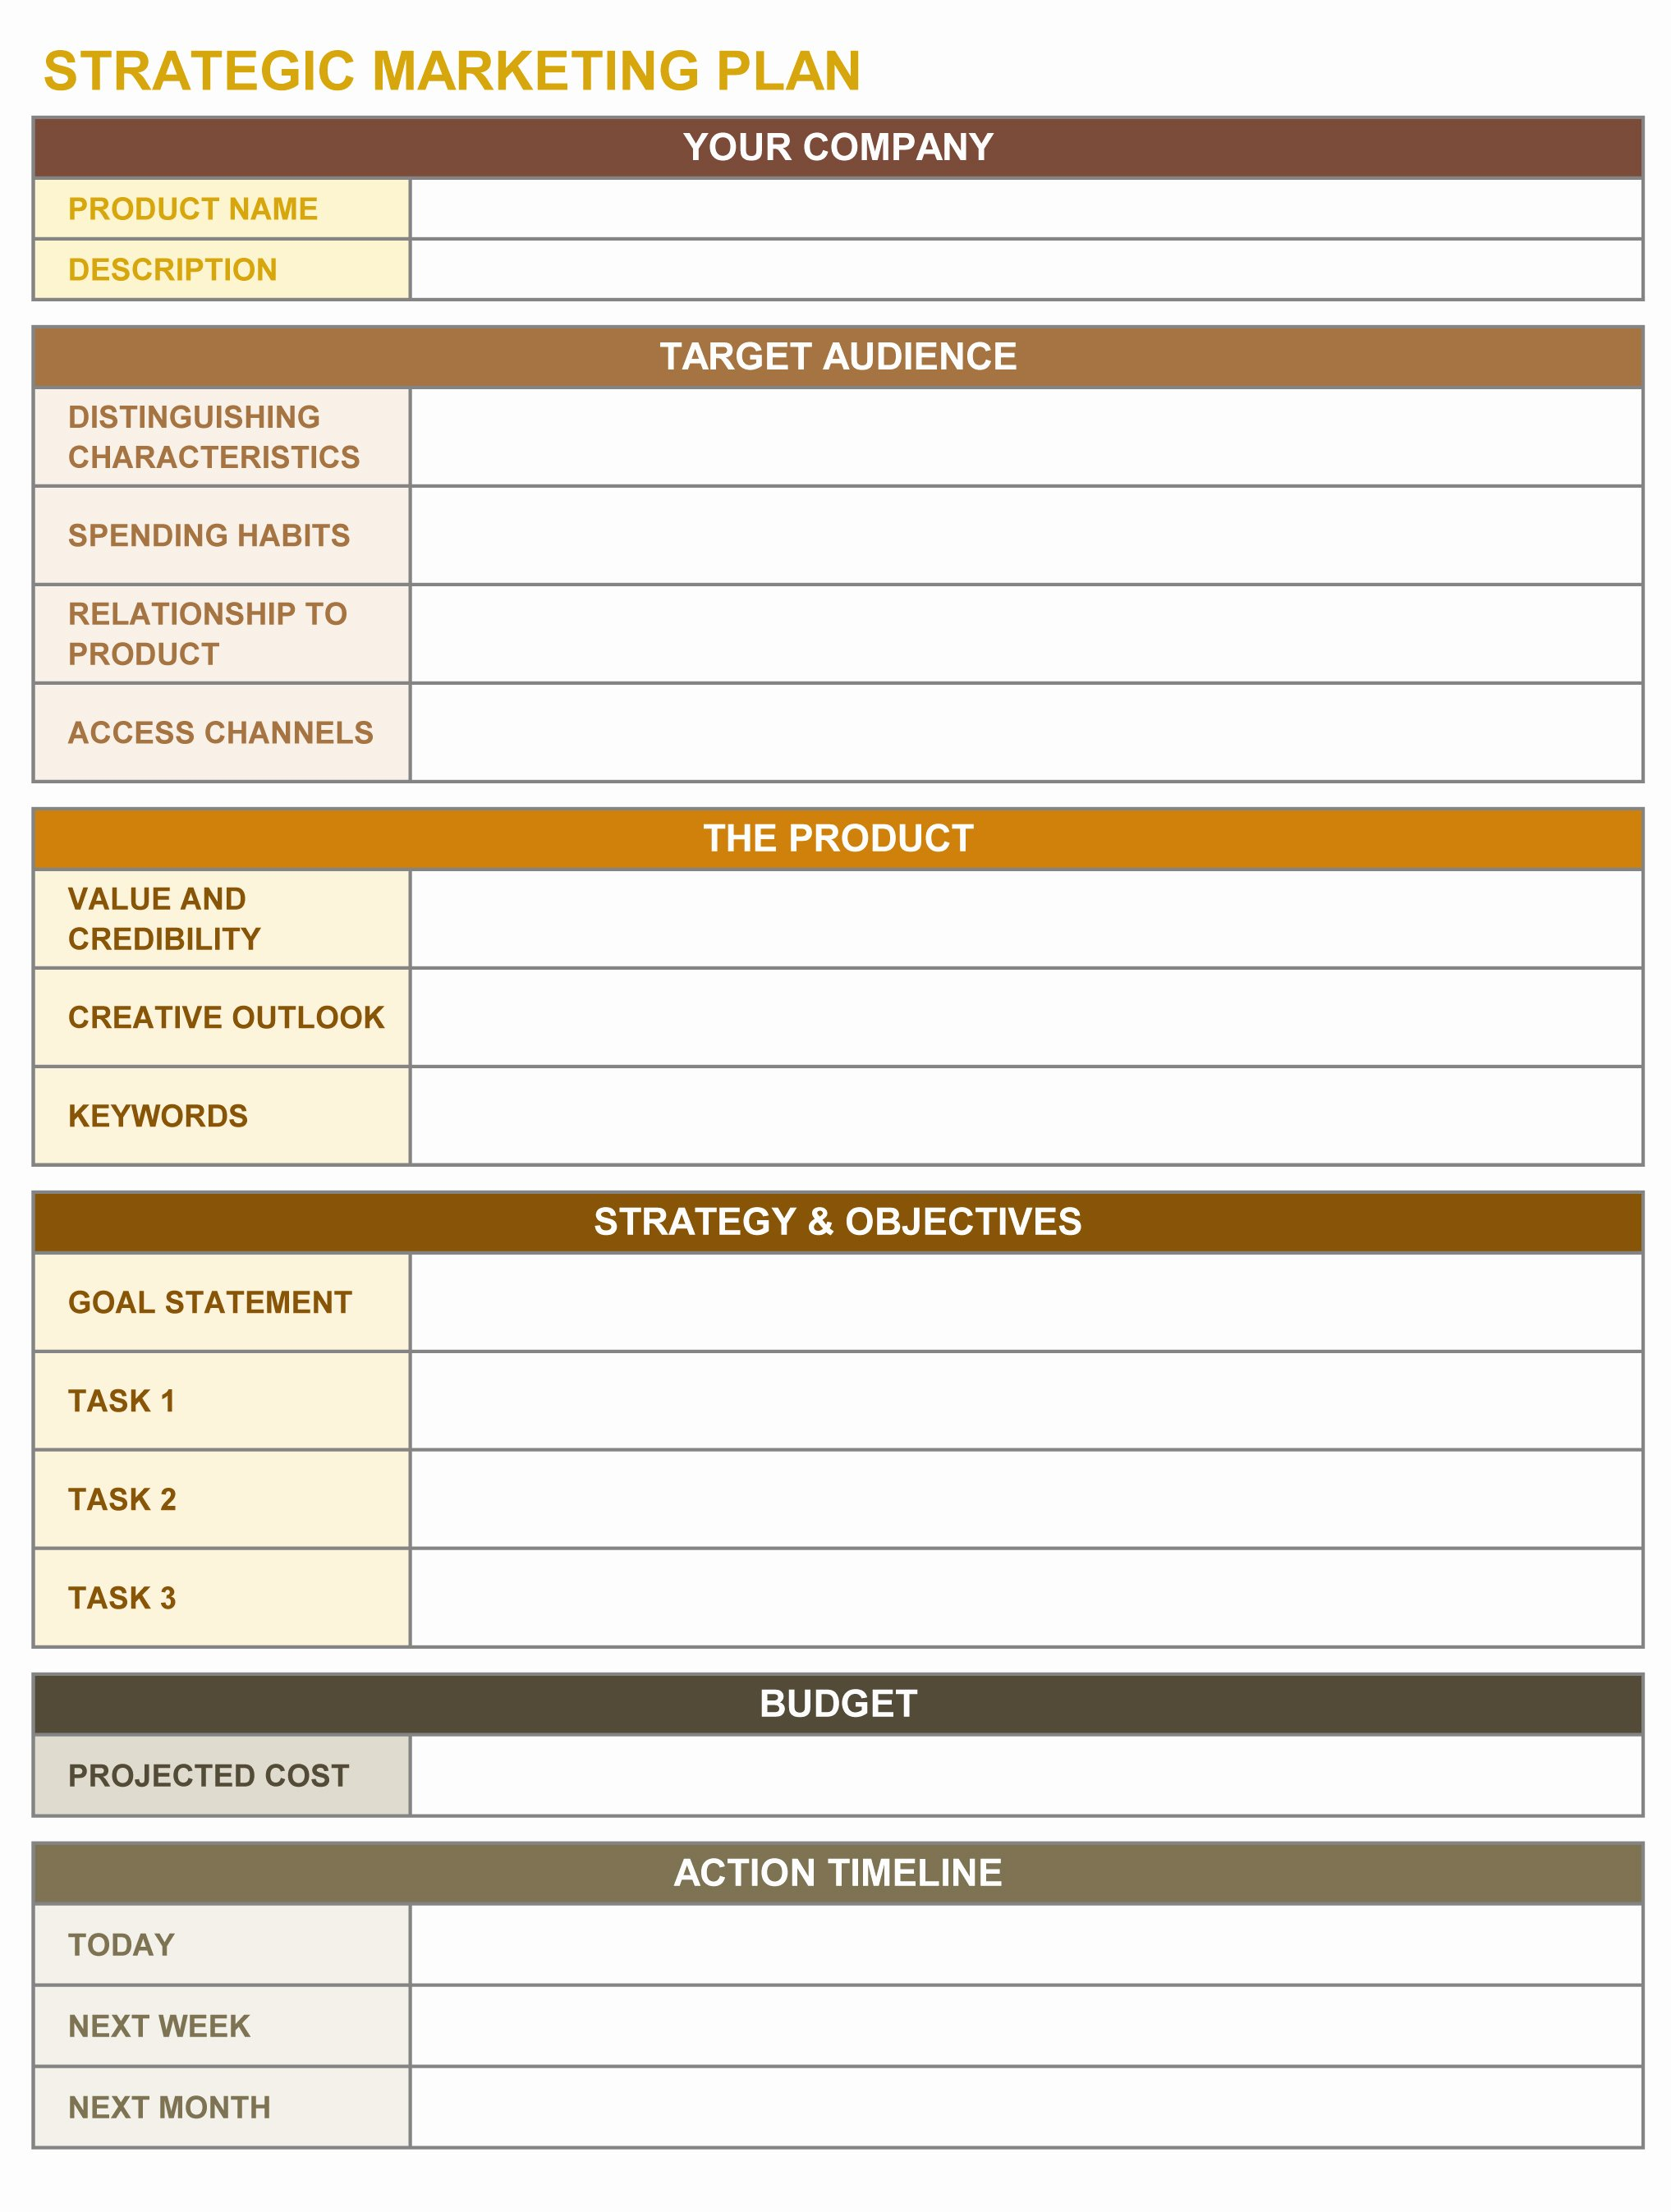 Marketing Timeline Template Excel Inspirational 9 Free Strategic Planning Templates Smartsheet